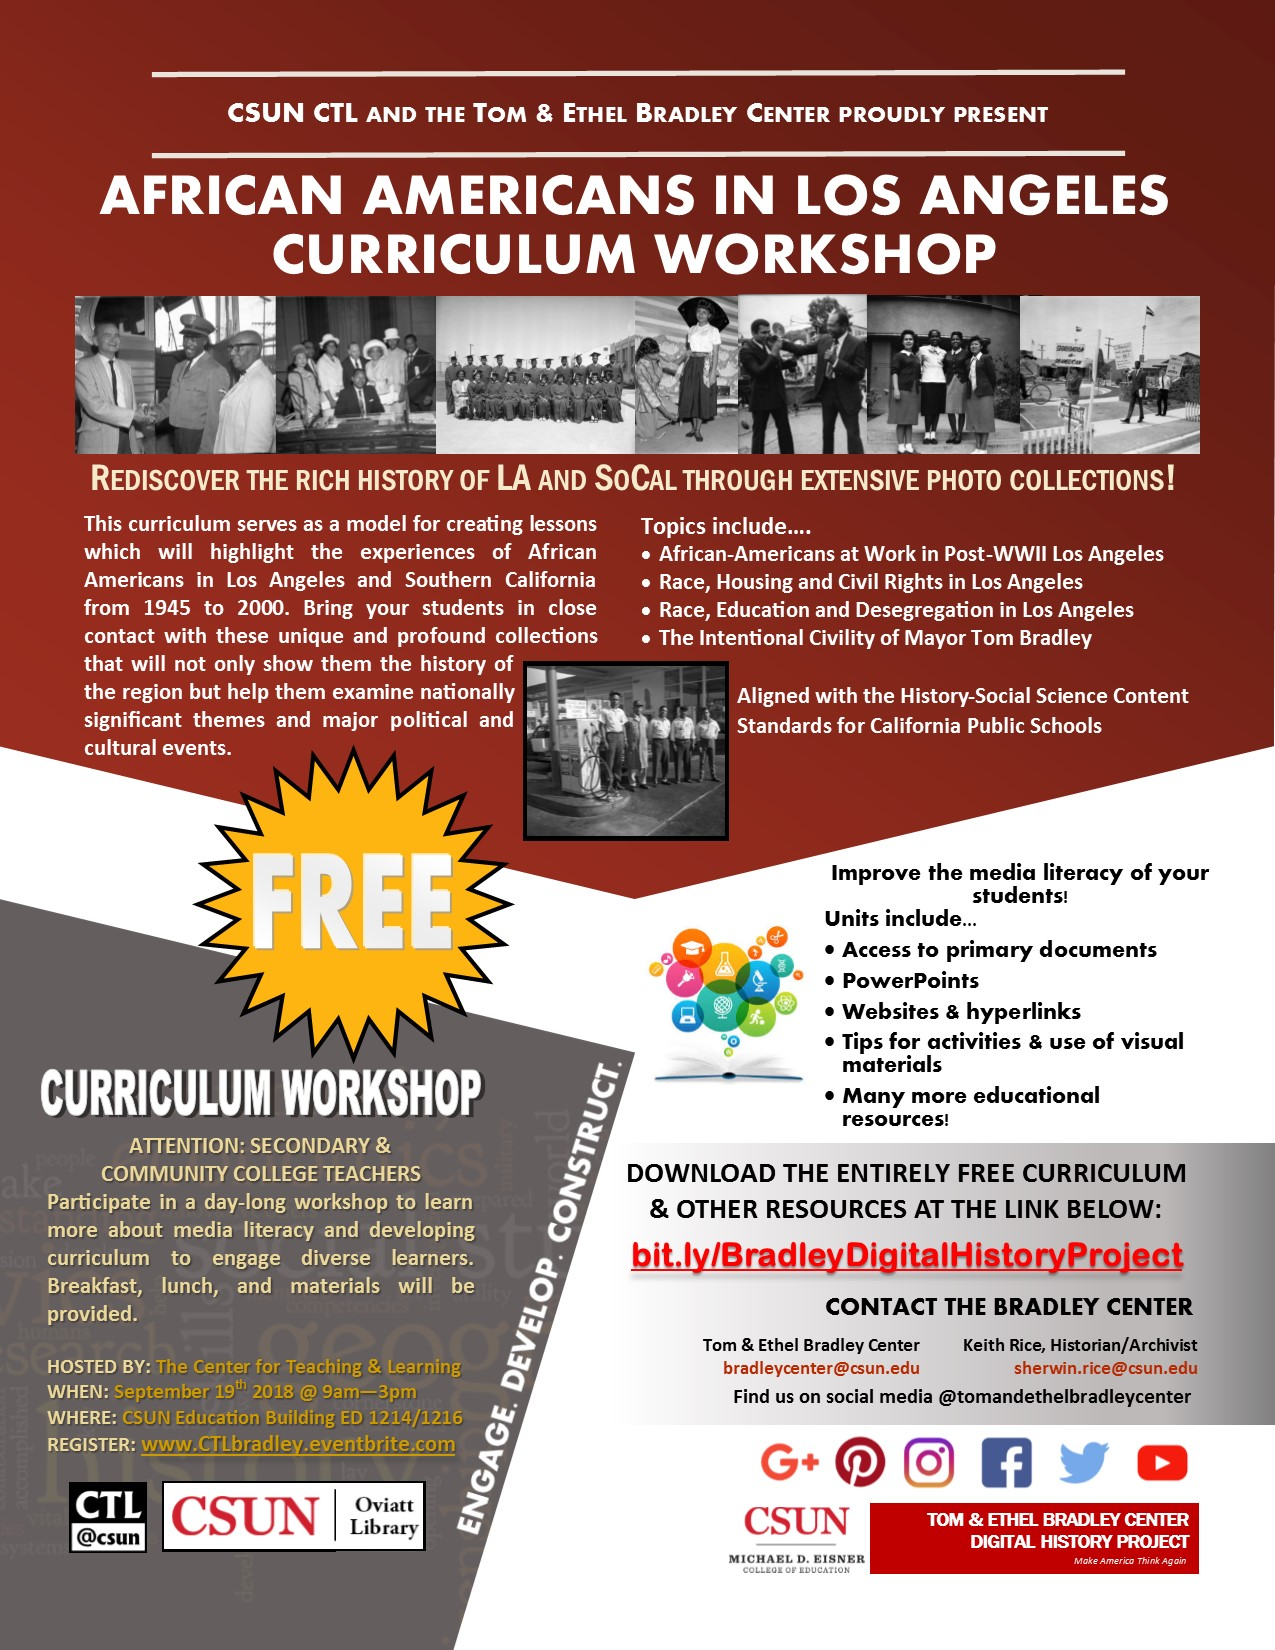 Curriculum Workshop: African Americans in LA. Hosted by the Center for Teaching and Learning. Monday, March 26, 2018 from 9am-3pm. Free. CSUN Education Building ED1214/1216